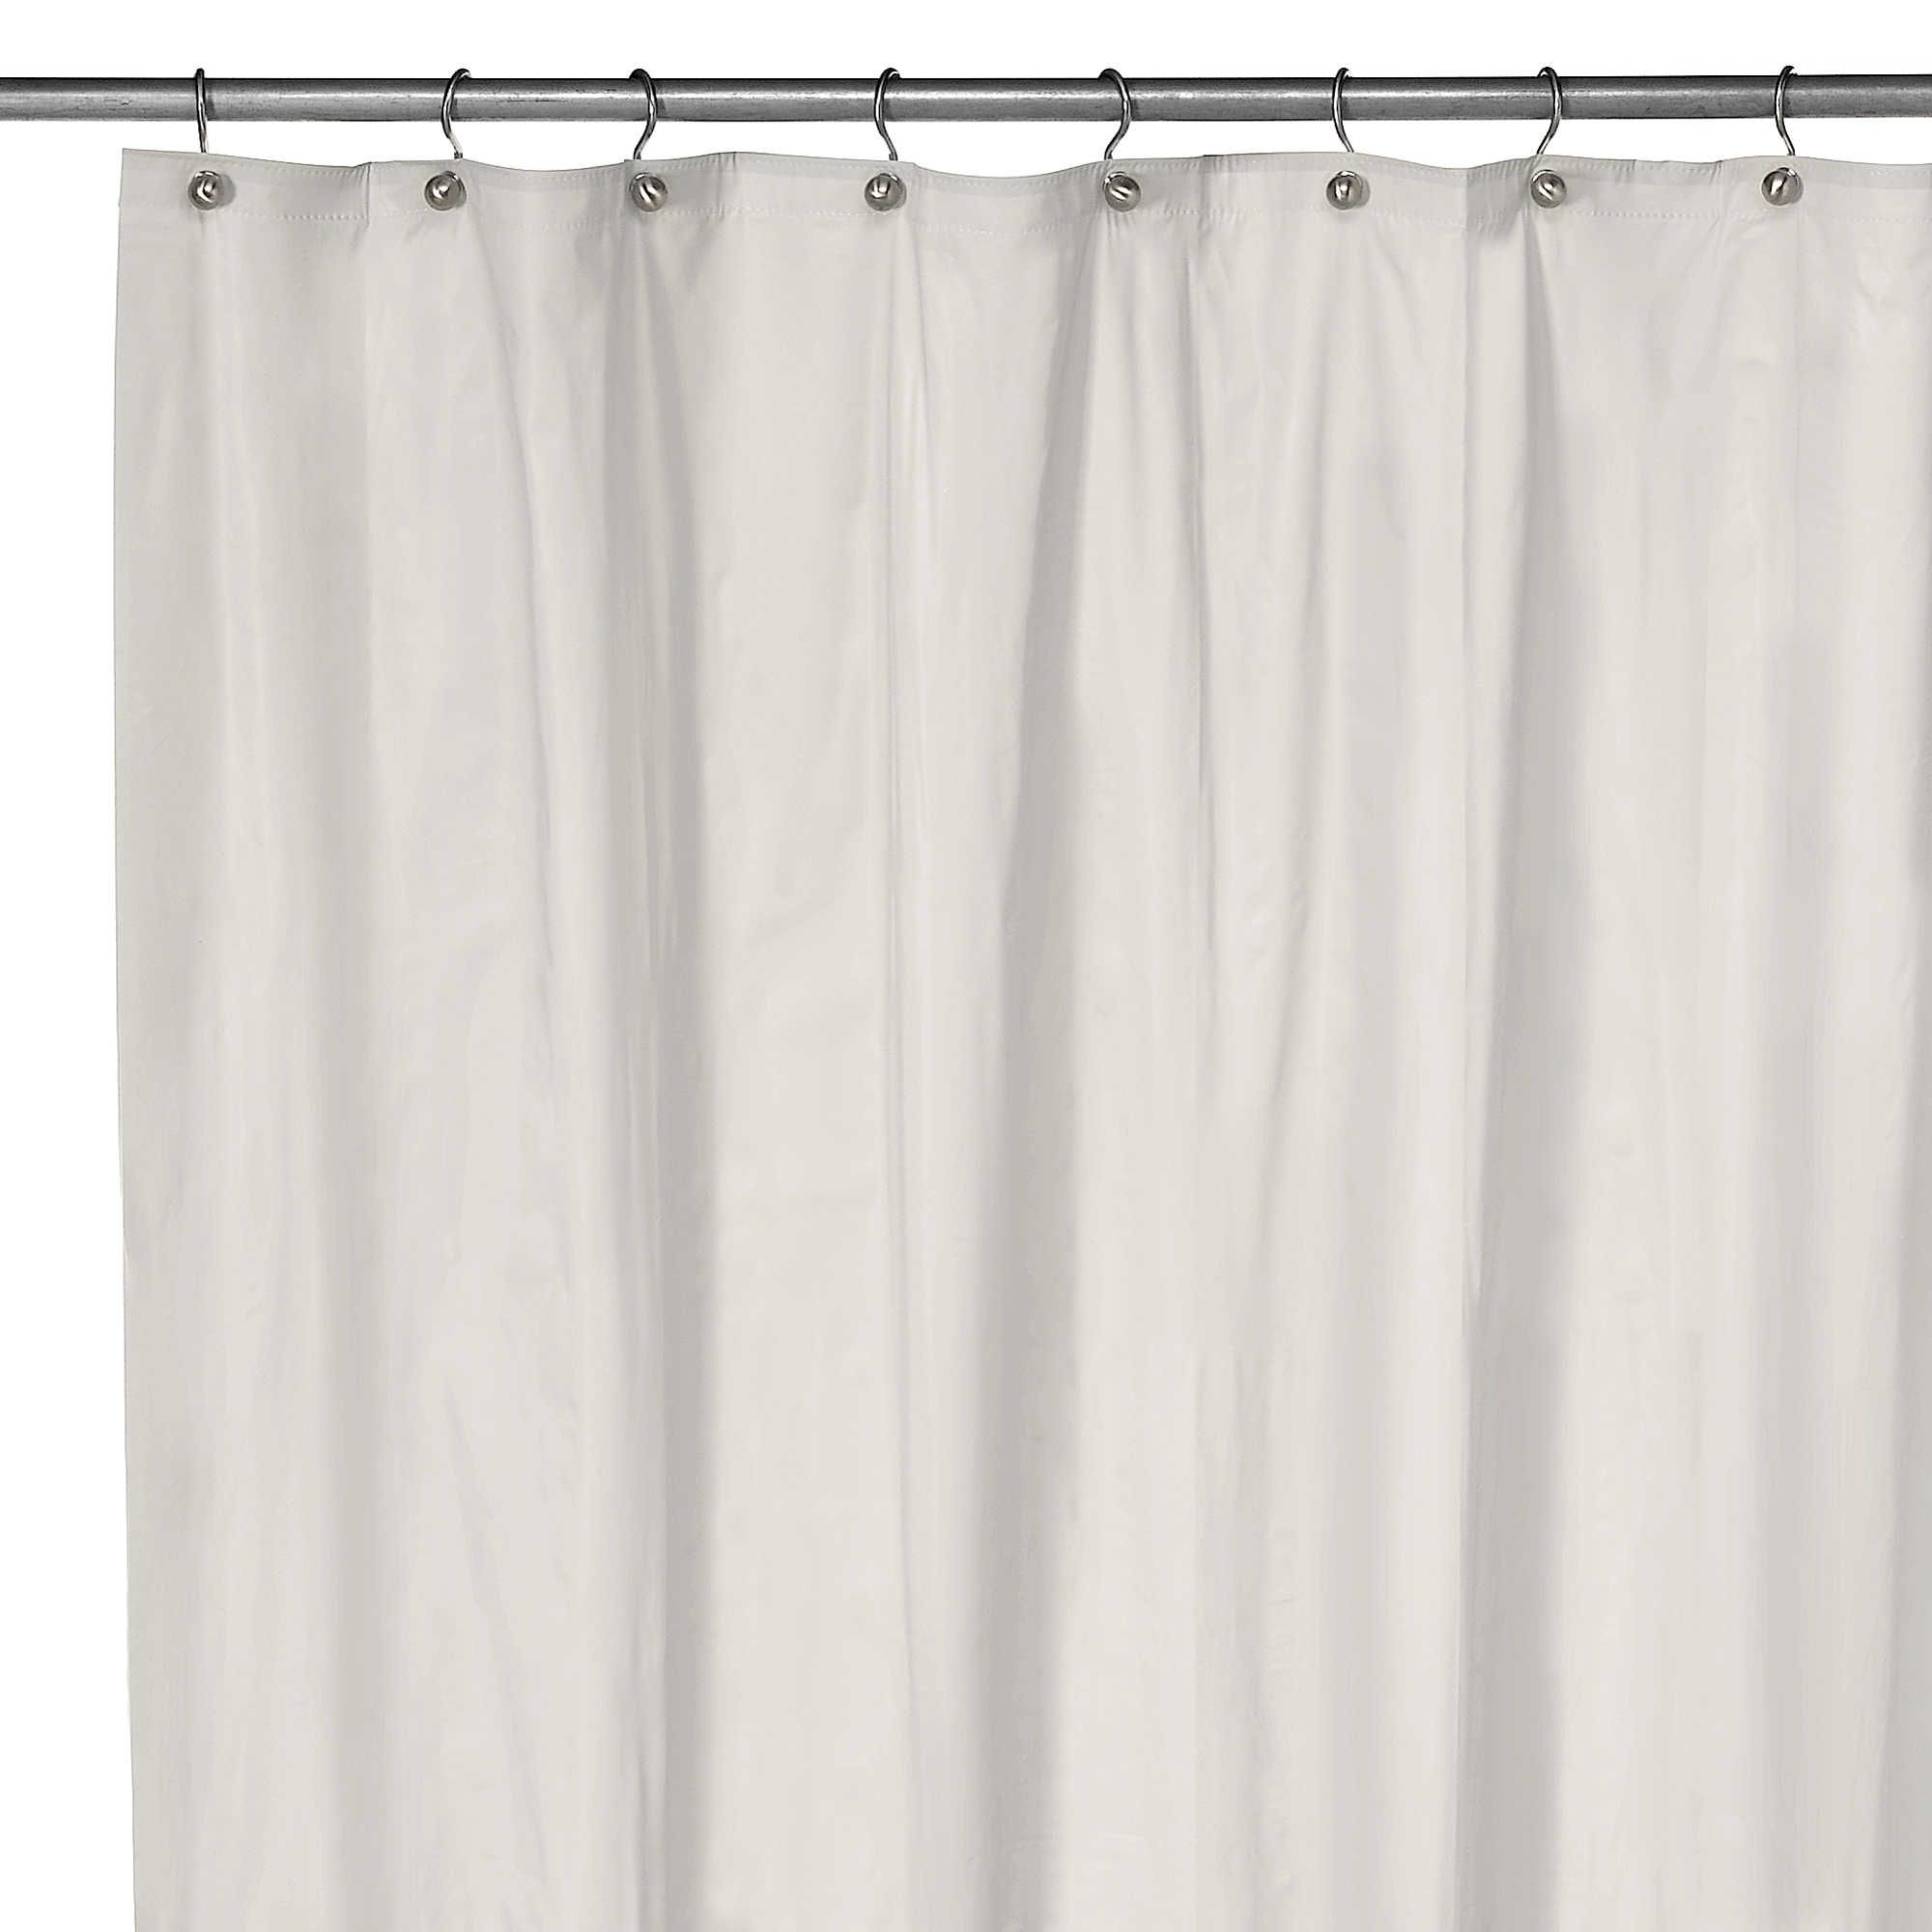 Invalid Url Extra Long Shower Curtain Long Shower Curtains